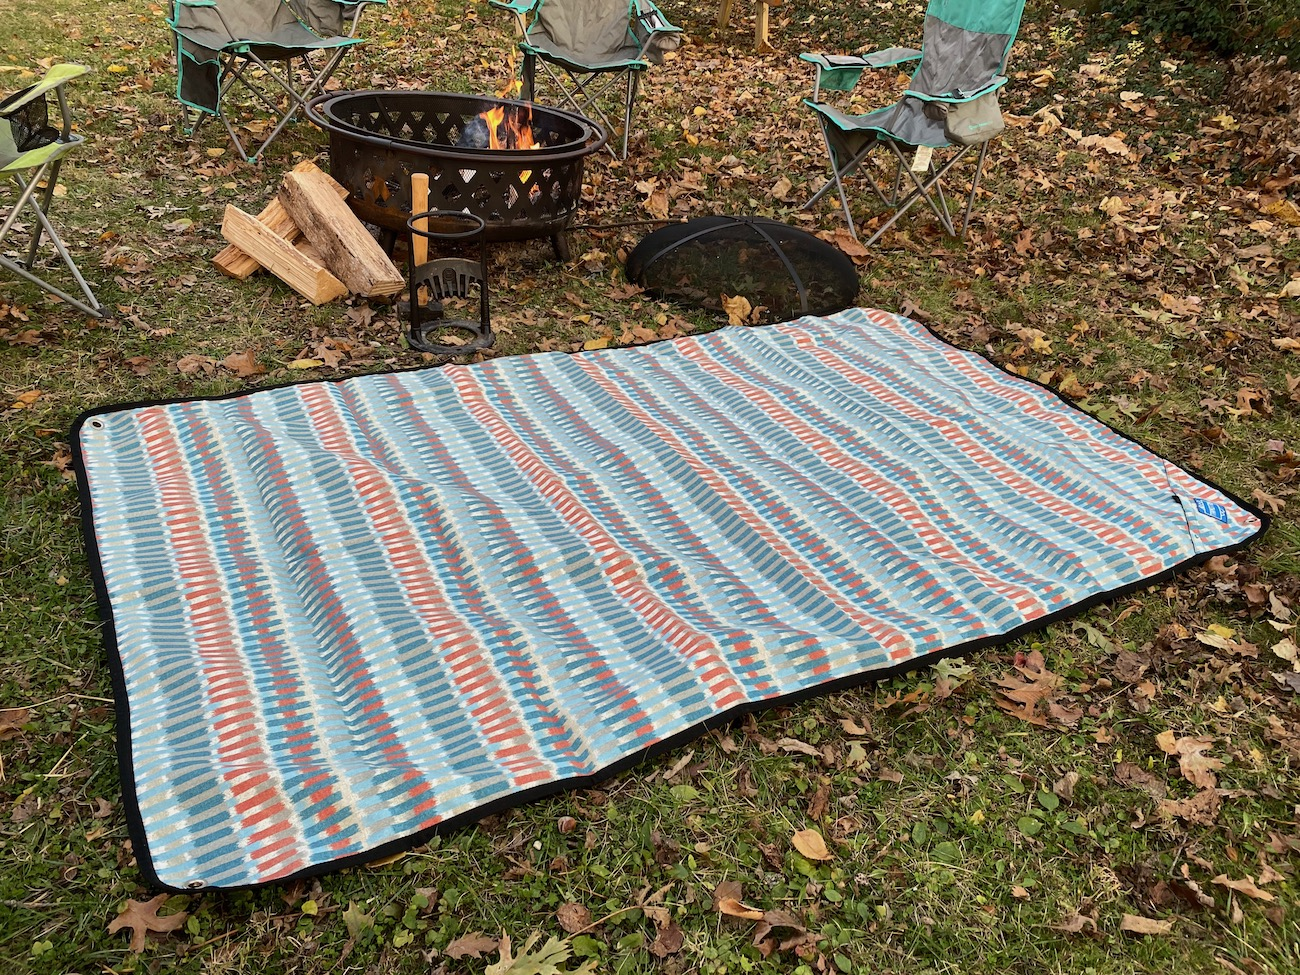 "Tarpestry is a super versatile, weather-resistant outdoor ground cover that's excellent for creating a comfy, waterproof surface for spending time in the backcountry or your backyard. /{&nbsp;}<a  href=""https://tarpestry.com/"" target=""_blank"" title=""https://tarpestry.com/"">Website{&nbsp;}</a>/ Price: $149-192 / Image: Chez Chesak // Published: 12.6.20"